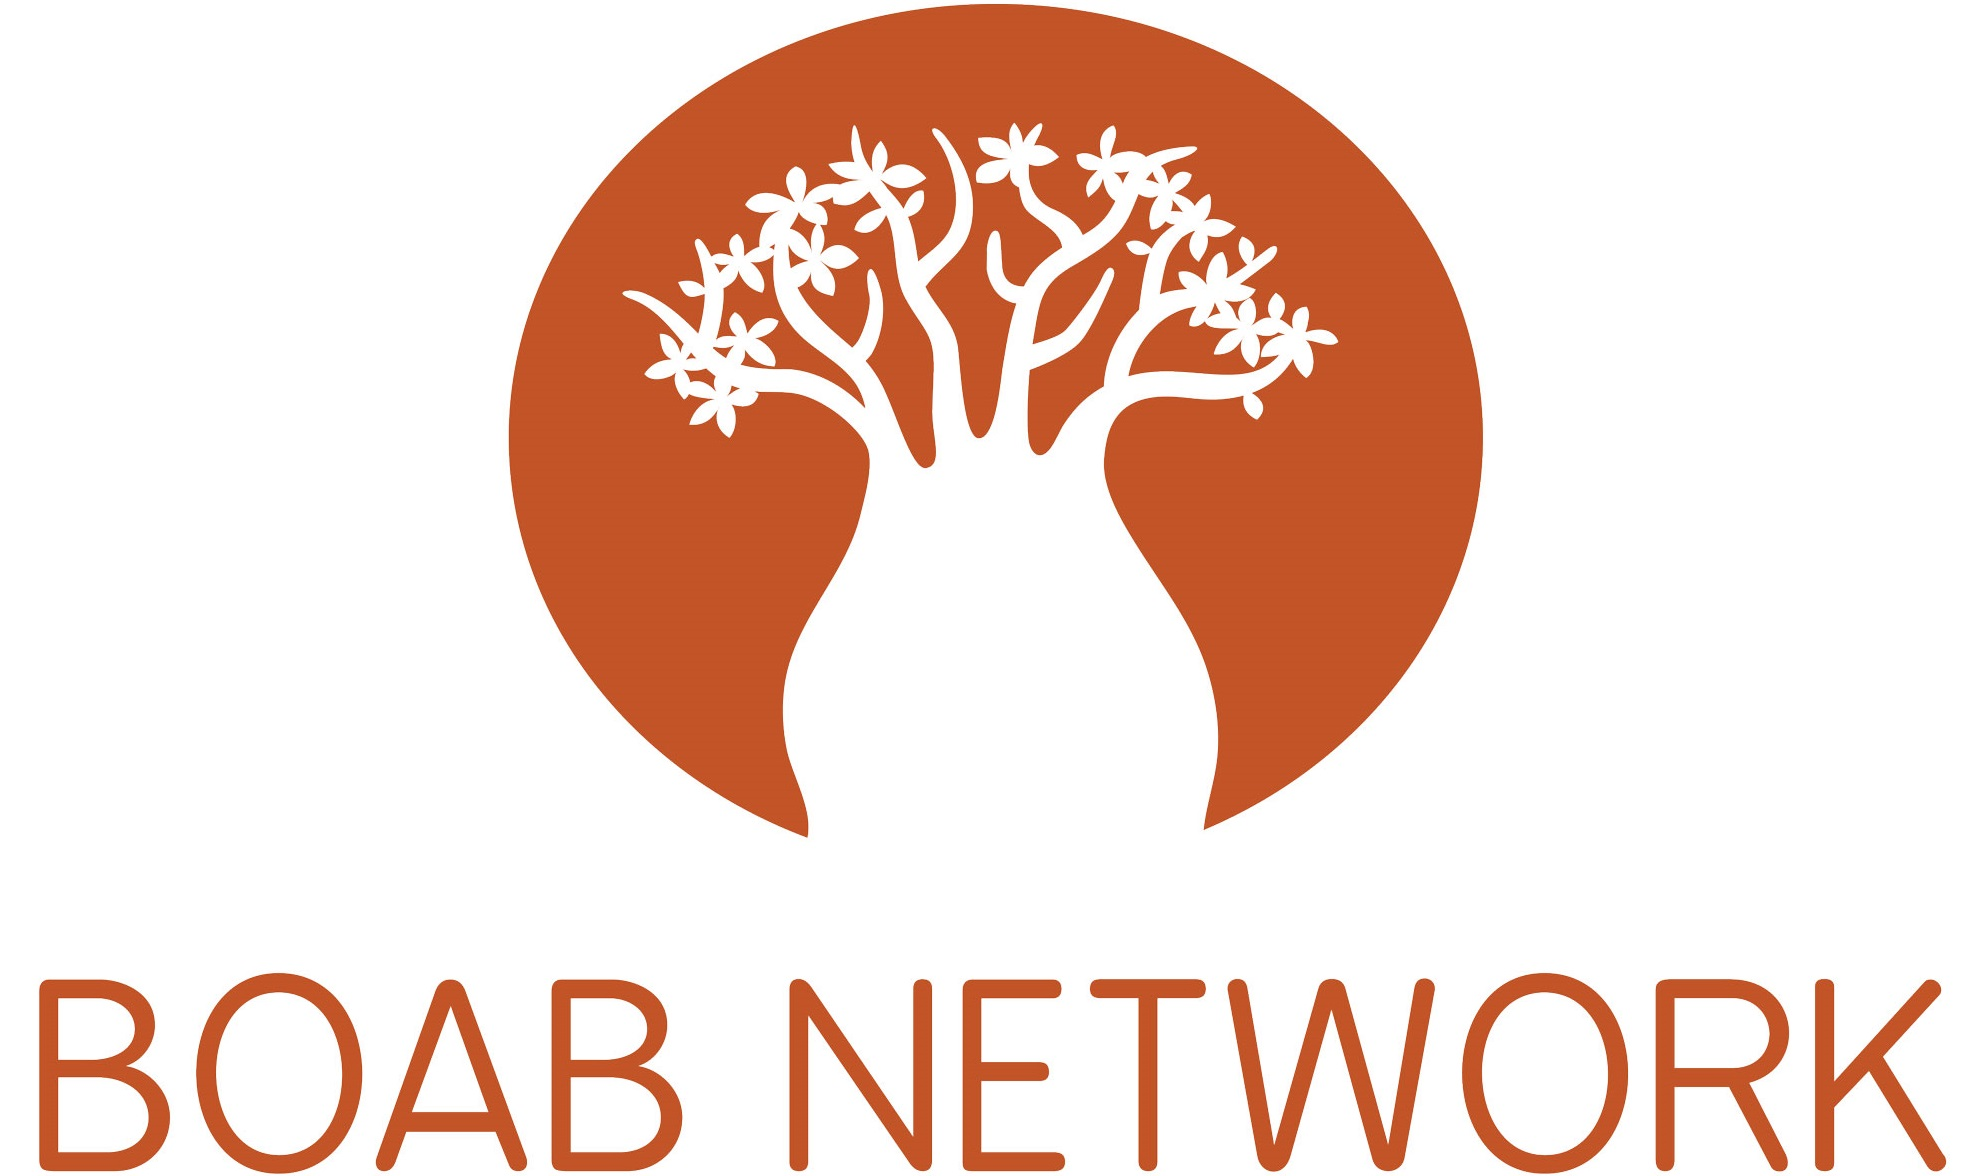 The Boab Network